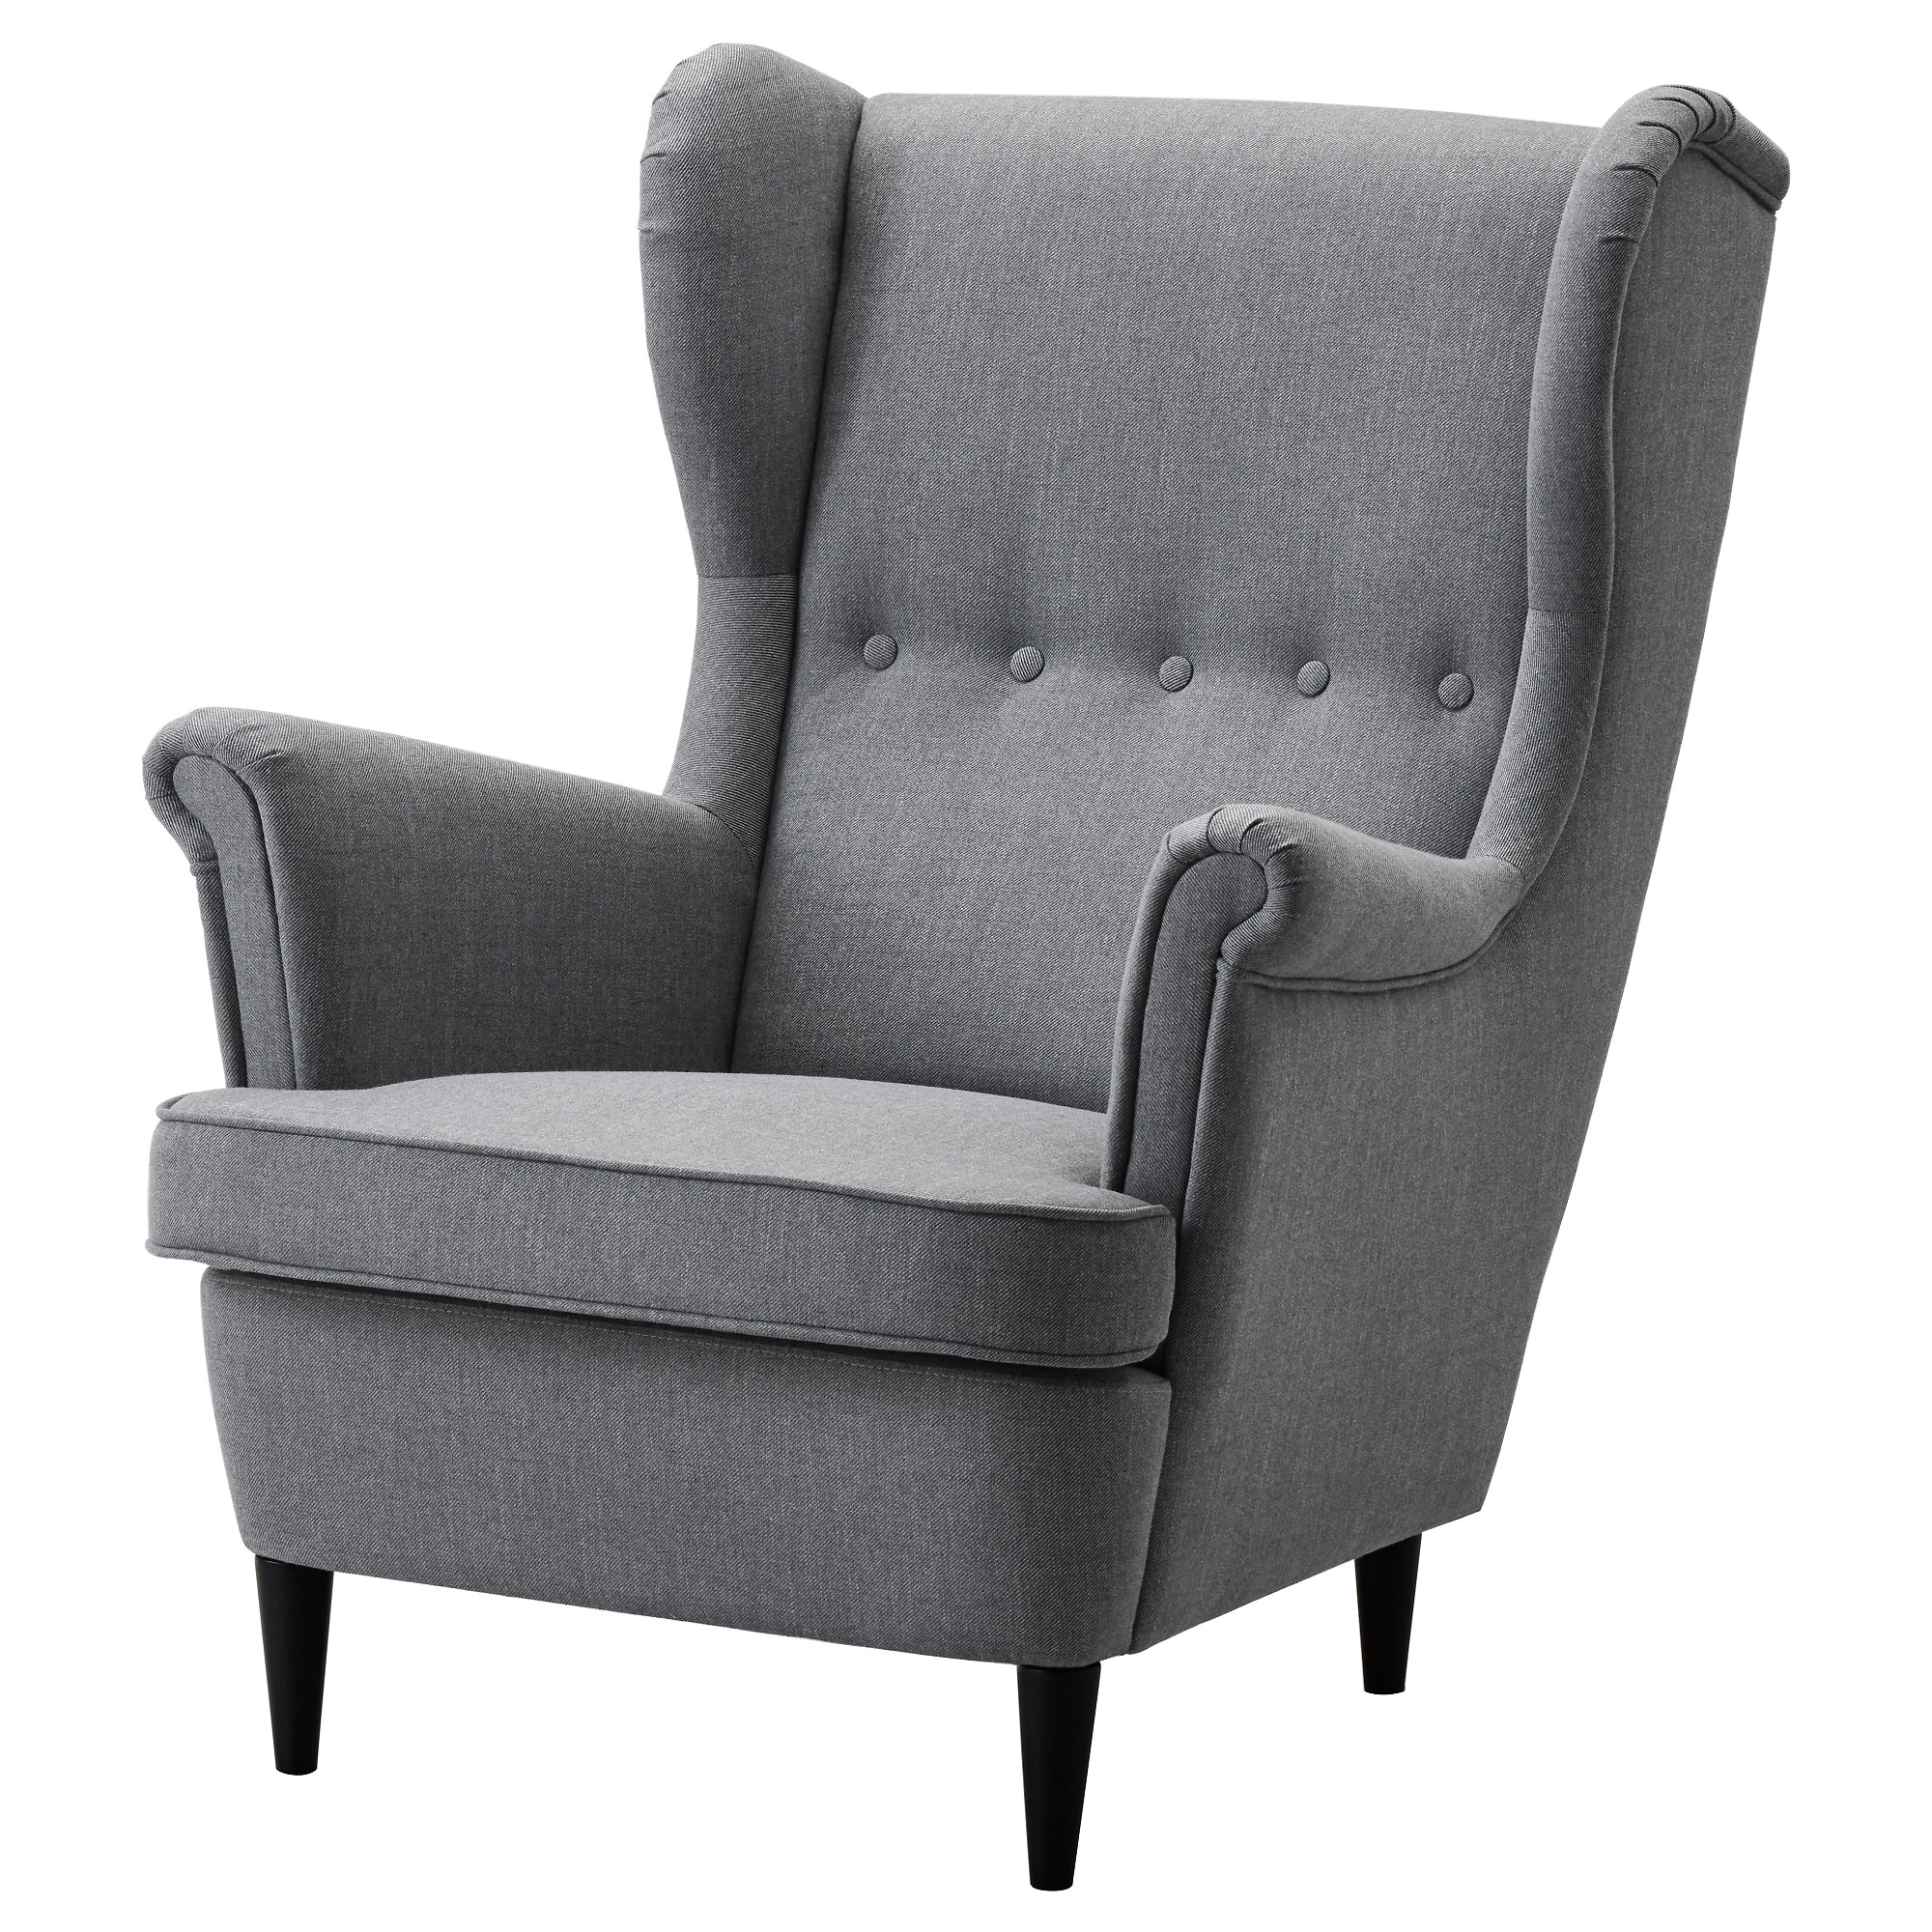 STRANDMON Wing chair   Nordvalla dark gray   IKEA. High Back Dining Chairs Ikea. Home Design Ideas